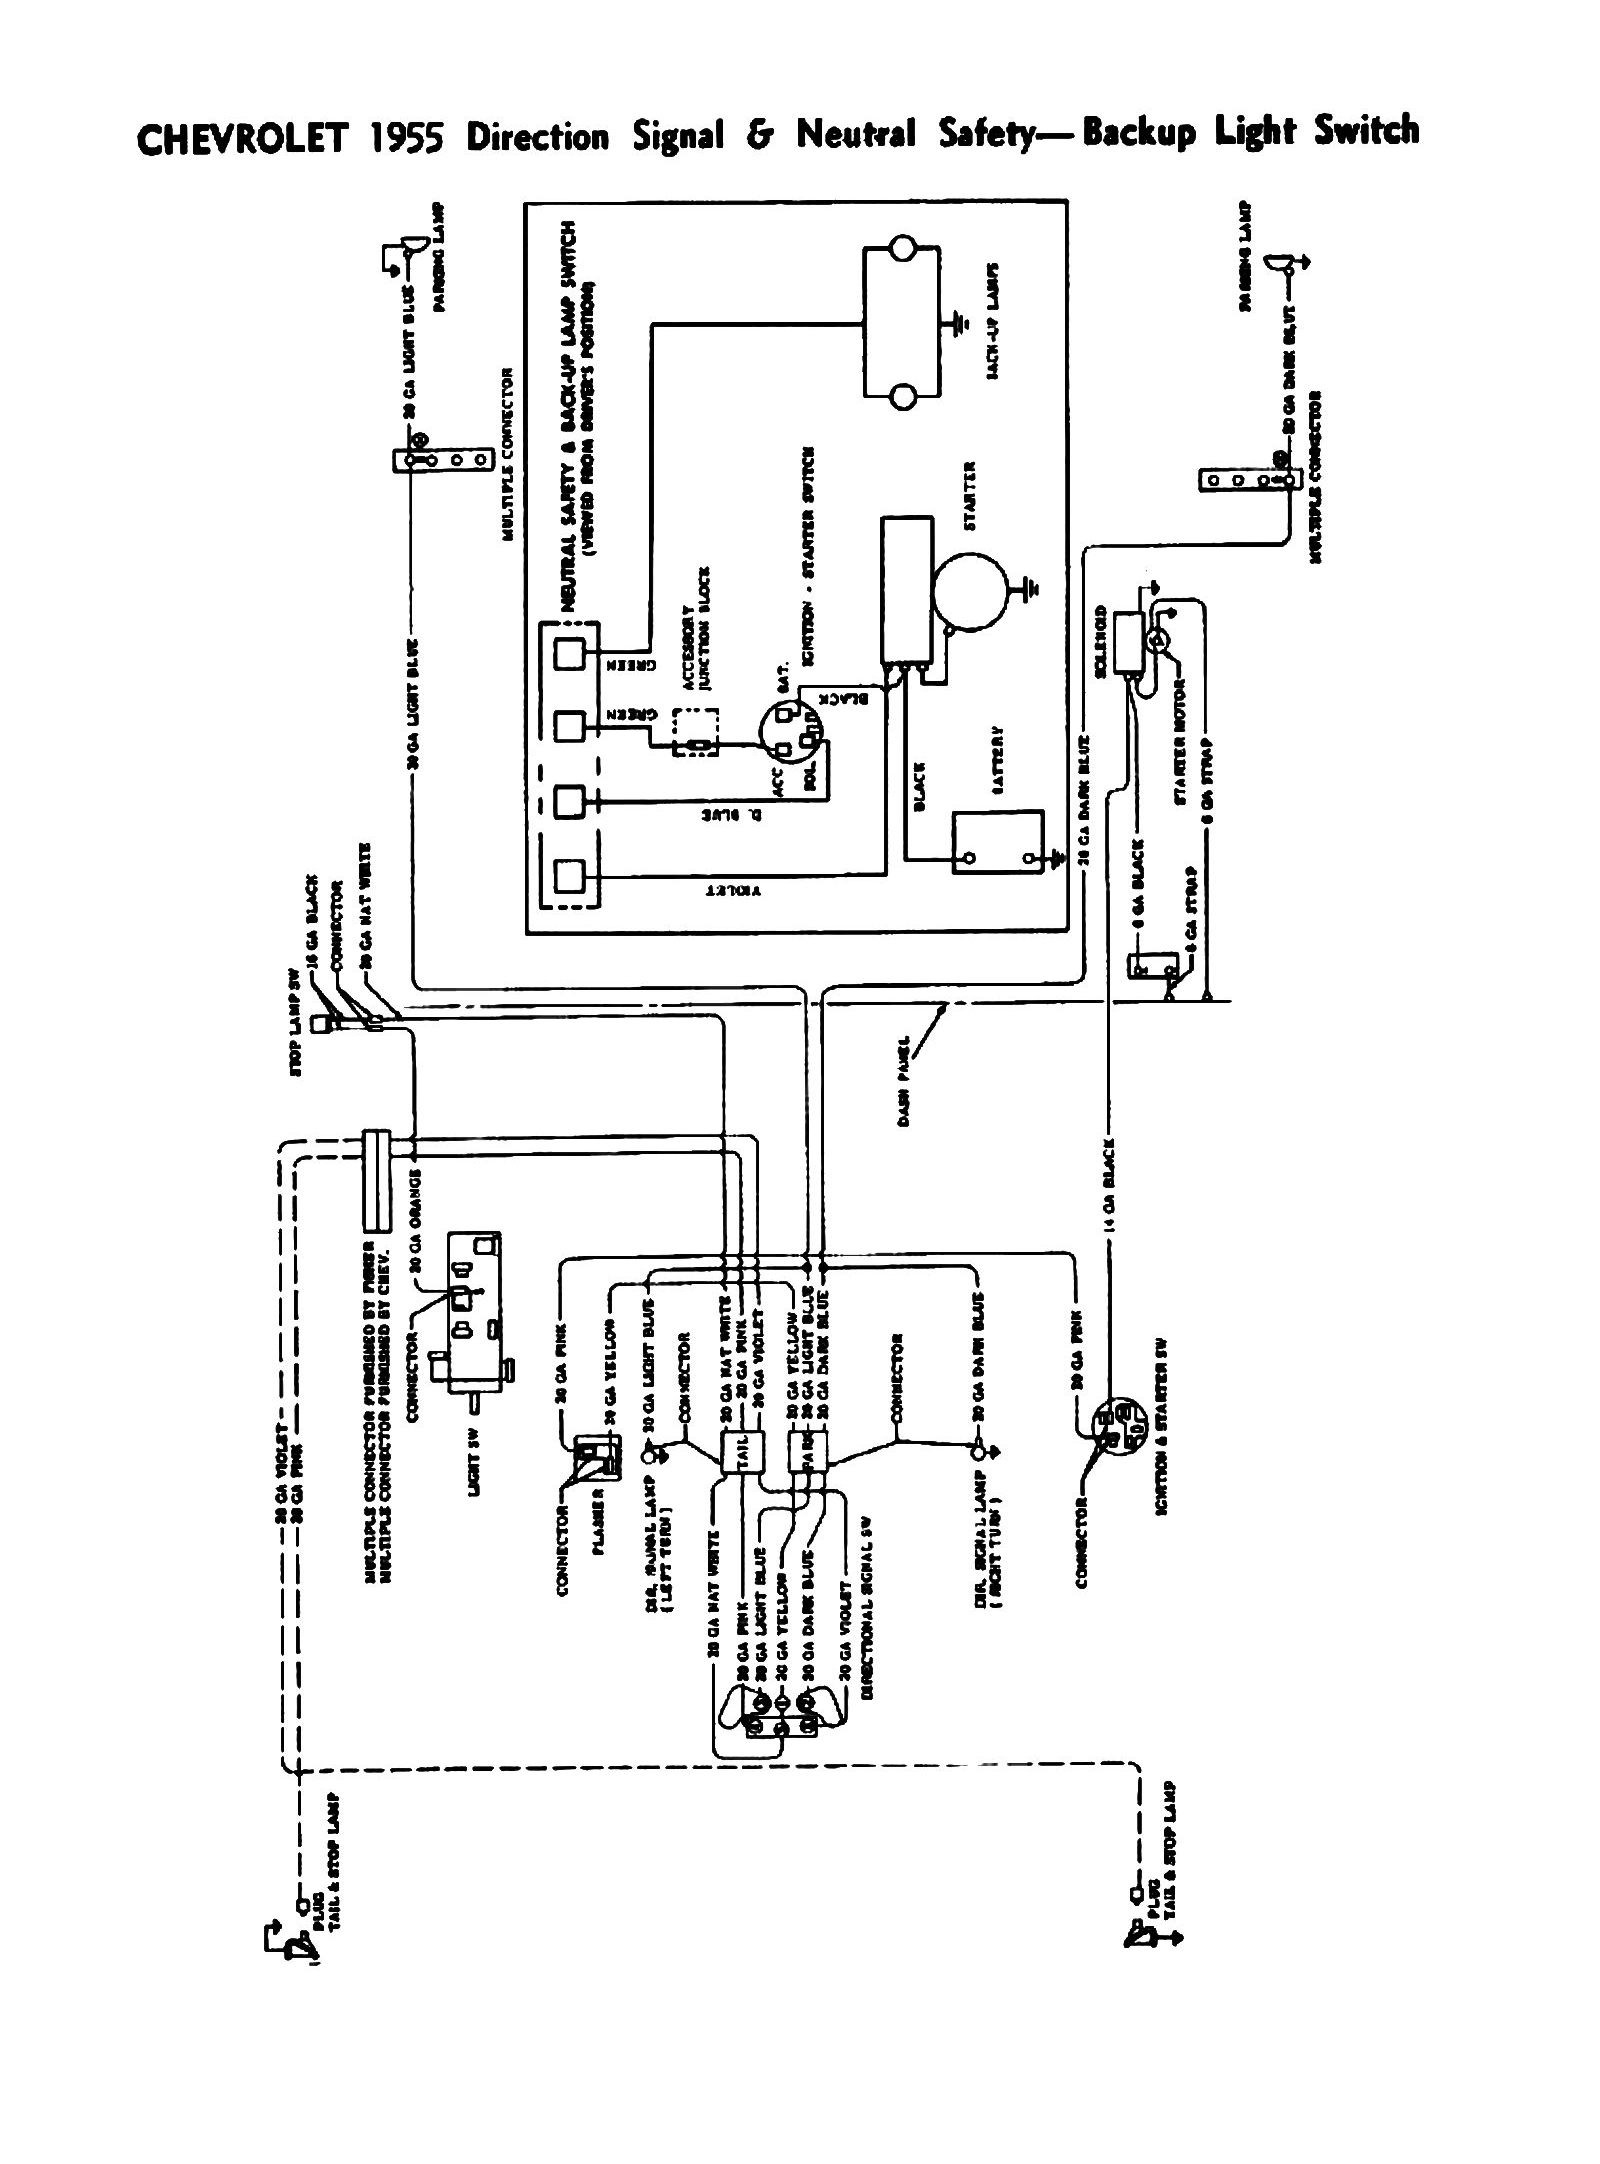 Chevy Heater Wiring Diagram 1979 - Wiring Library